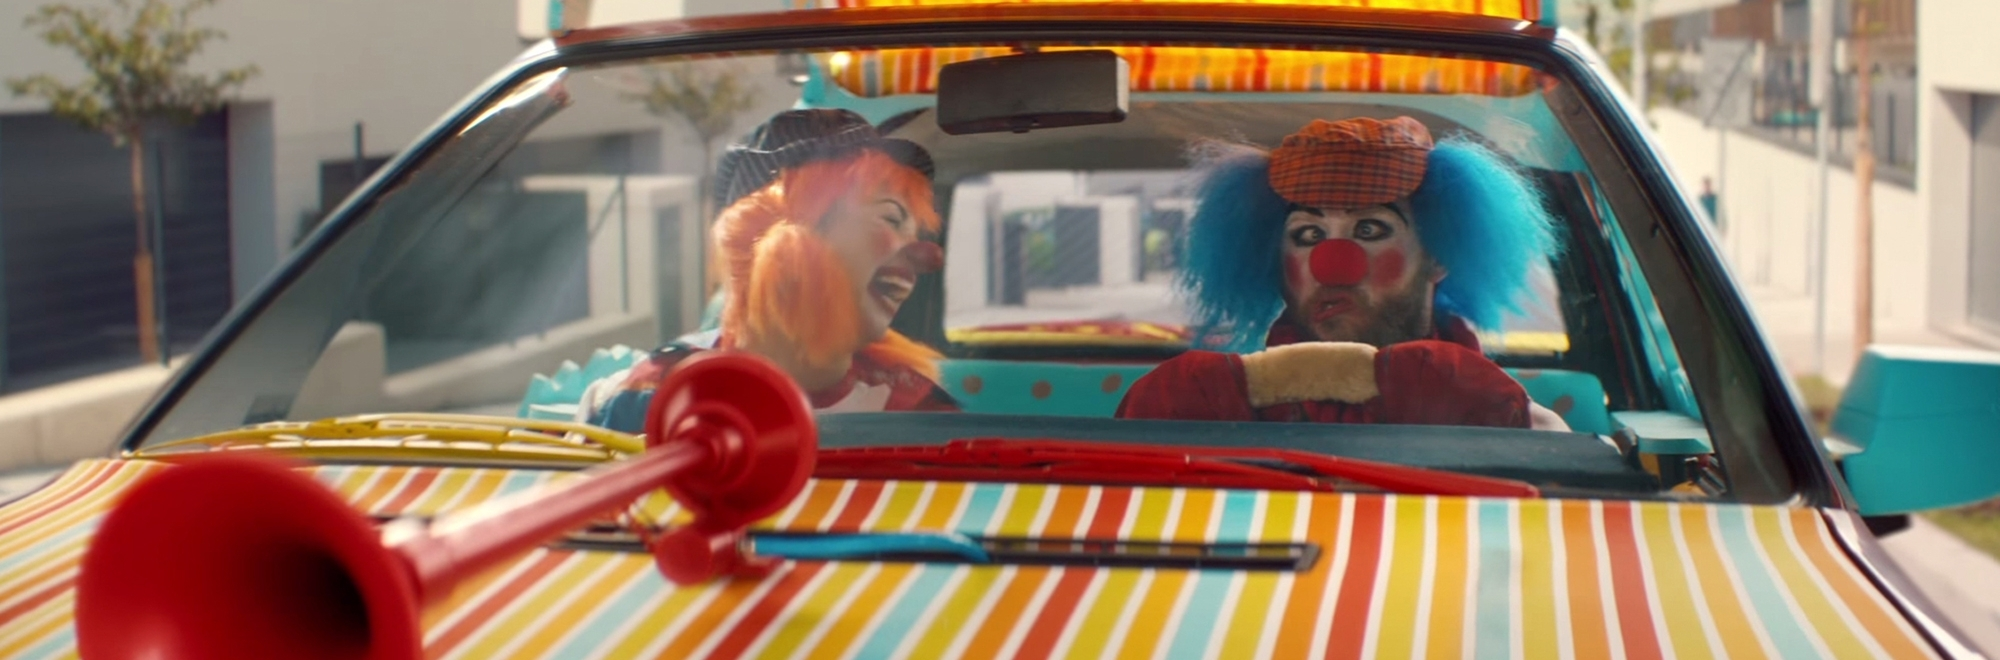 Audi shows how to avoid those clowns on the road